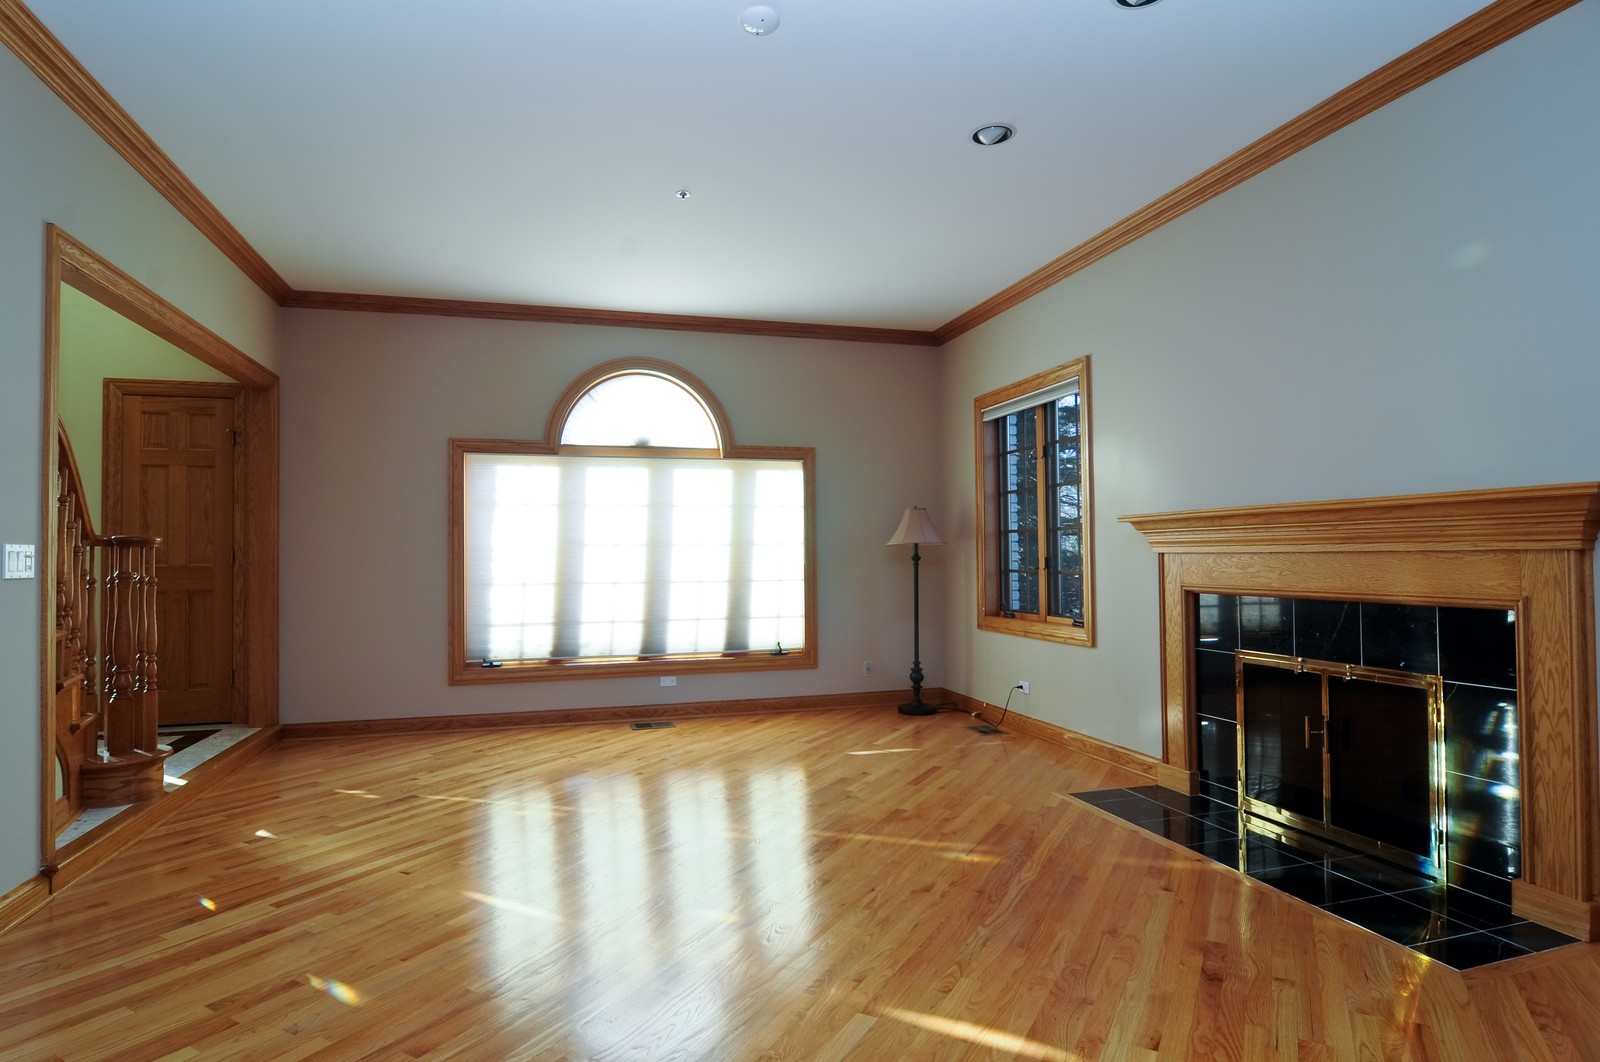 Real Estate Photography - 1181 Fairview Ln, Long Grove, IL, 60047 - Living Room